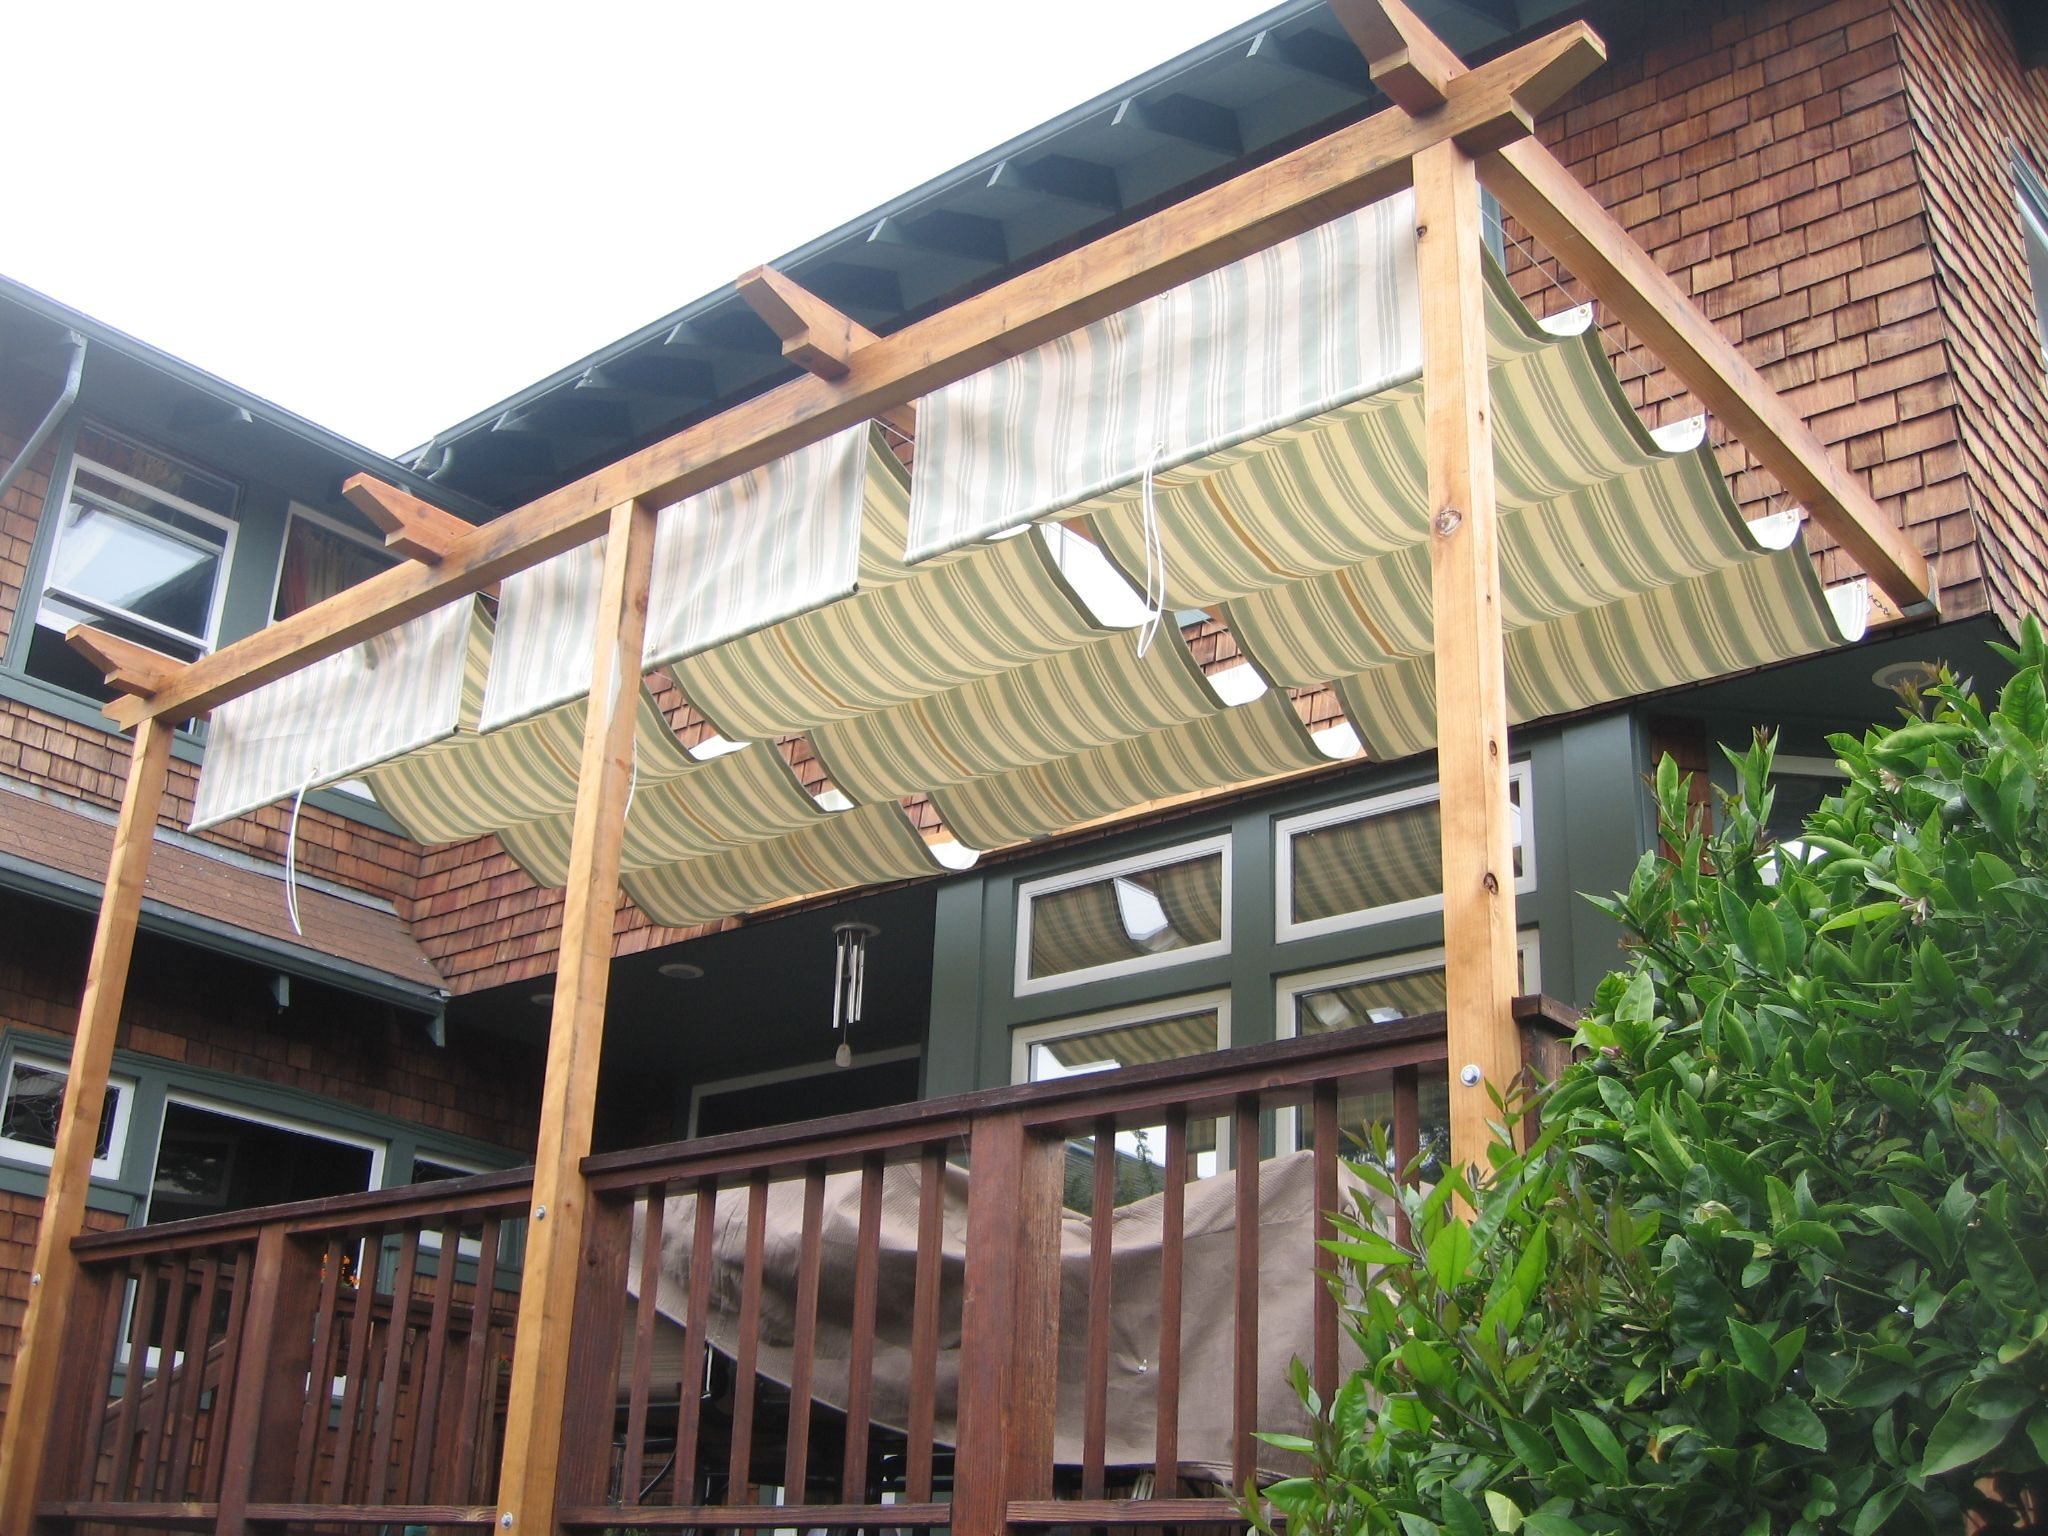 Retractable Shade For Deck